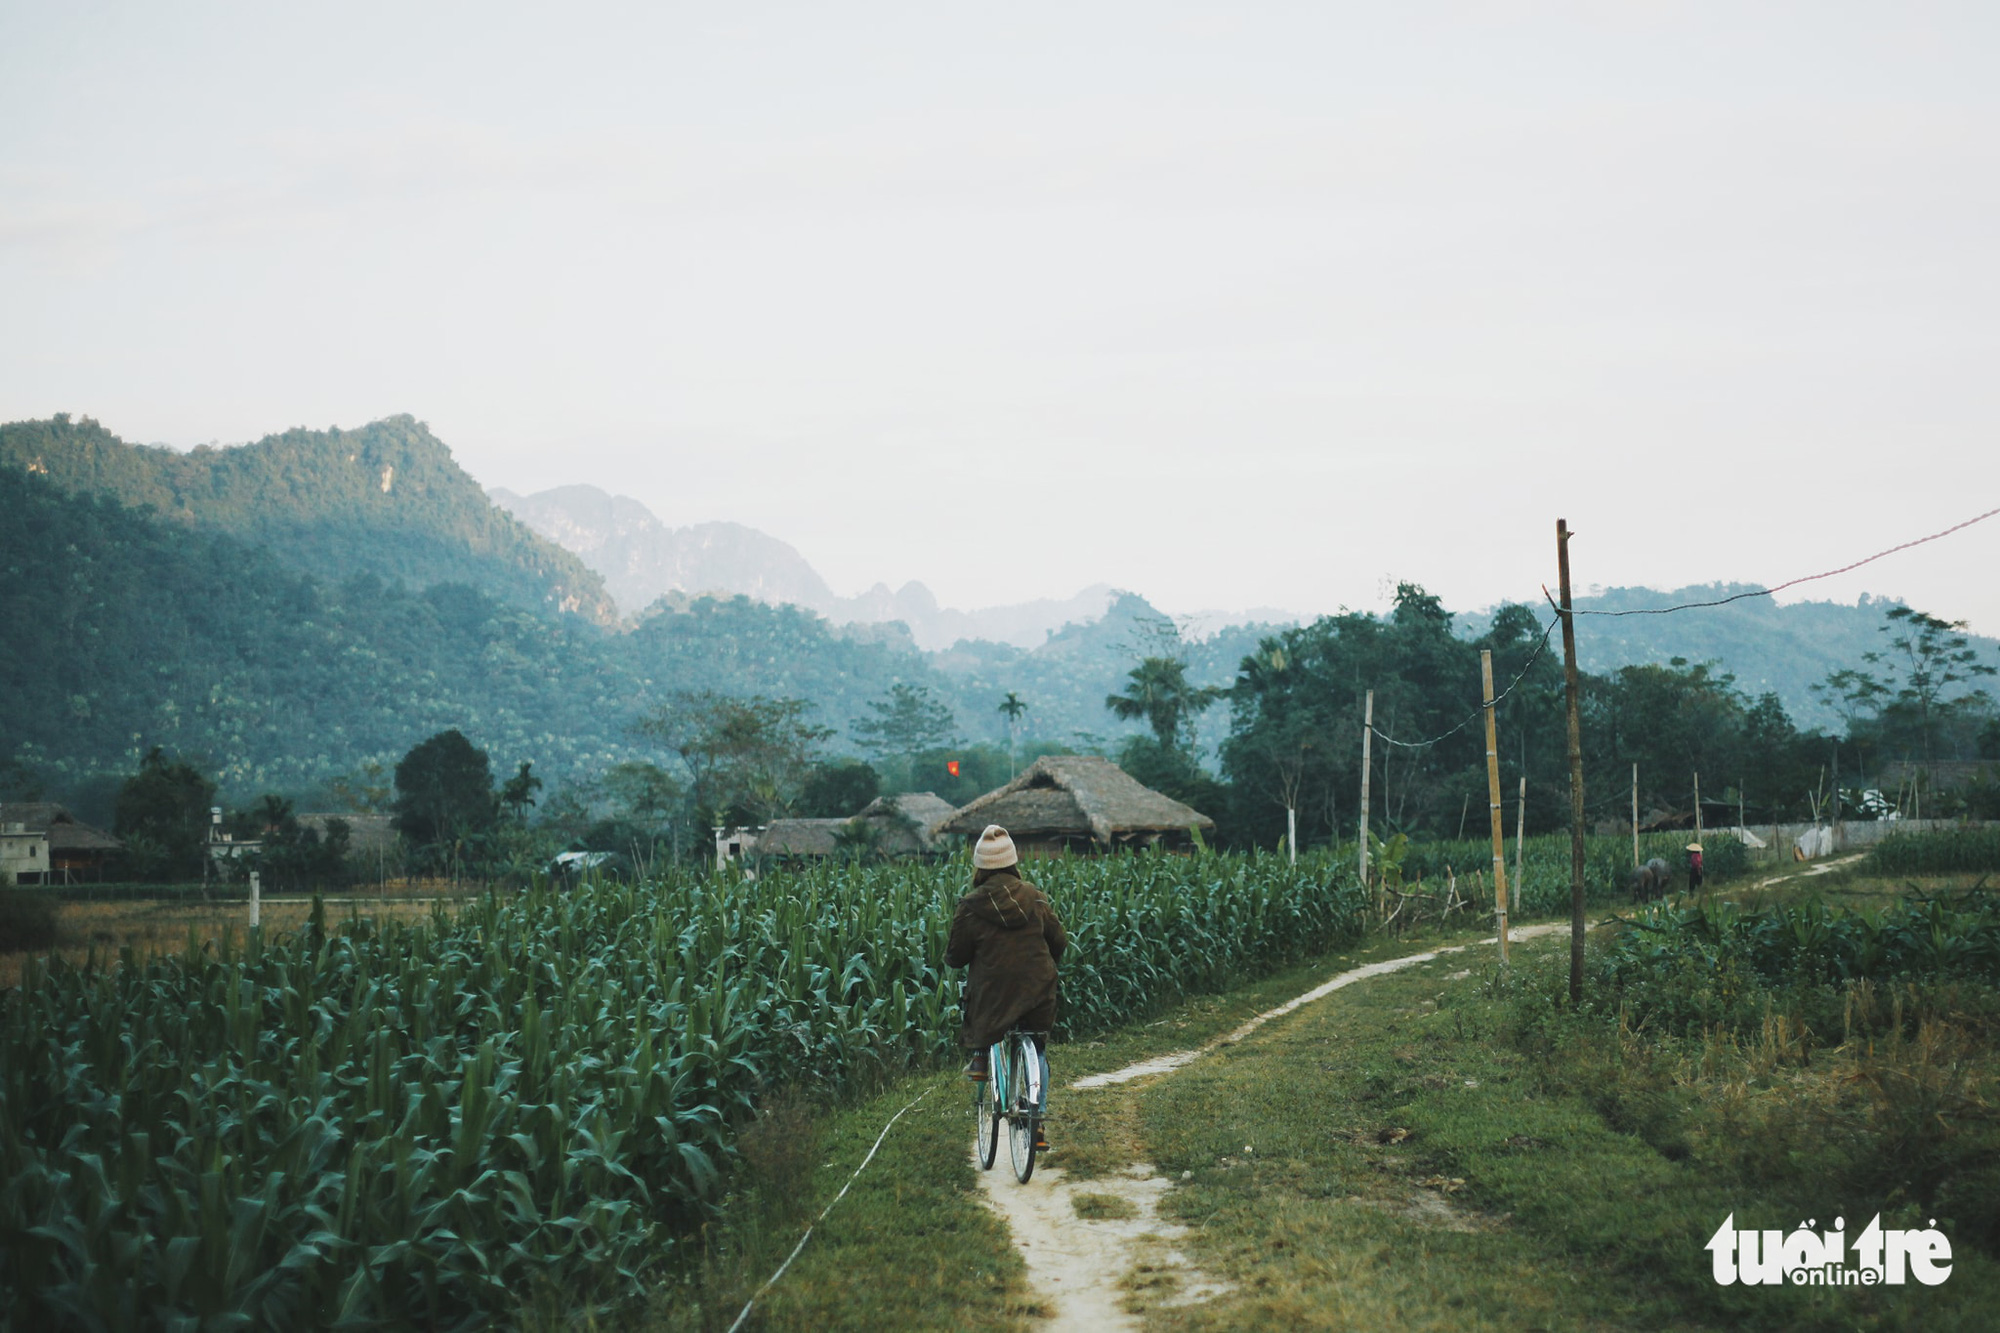 A visitor rides a bicycle on a dirt road next to the cornfields in Tong Pang Village, Lam Thuong Commune, Luc Yen District, Yen Bai Province, Vietnam. Photo: Cam Tien / Tuoi Tre